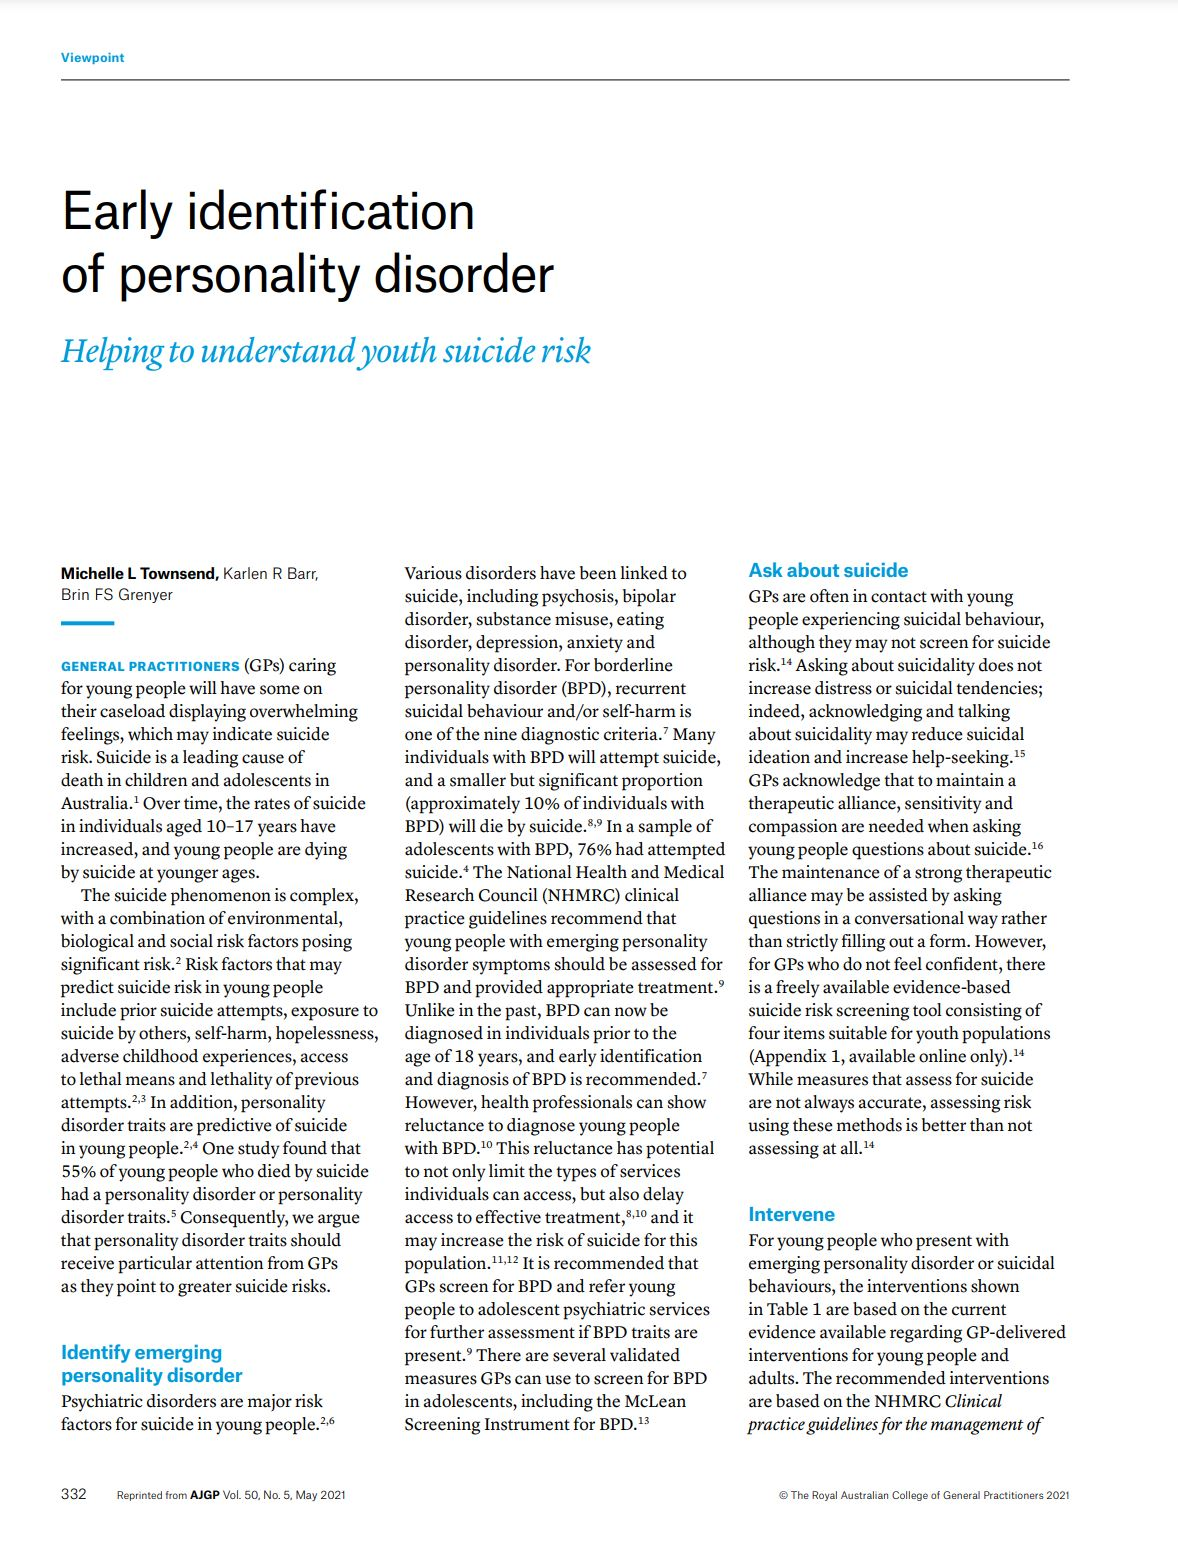 Early identification of PD